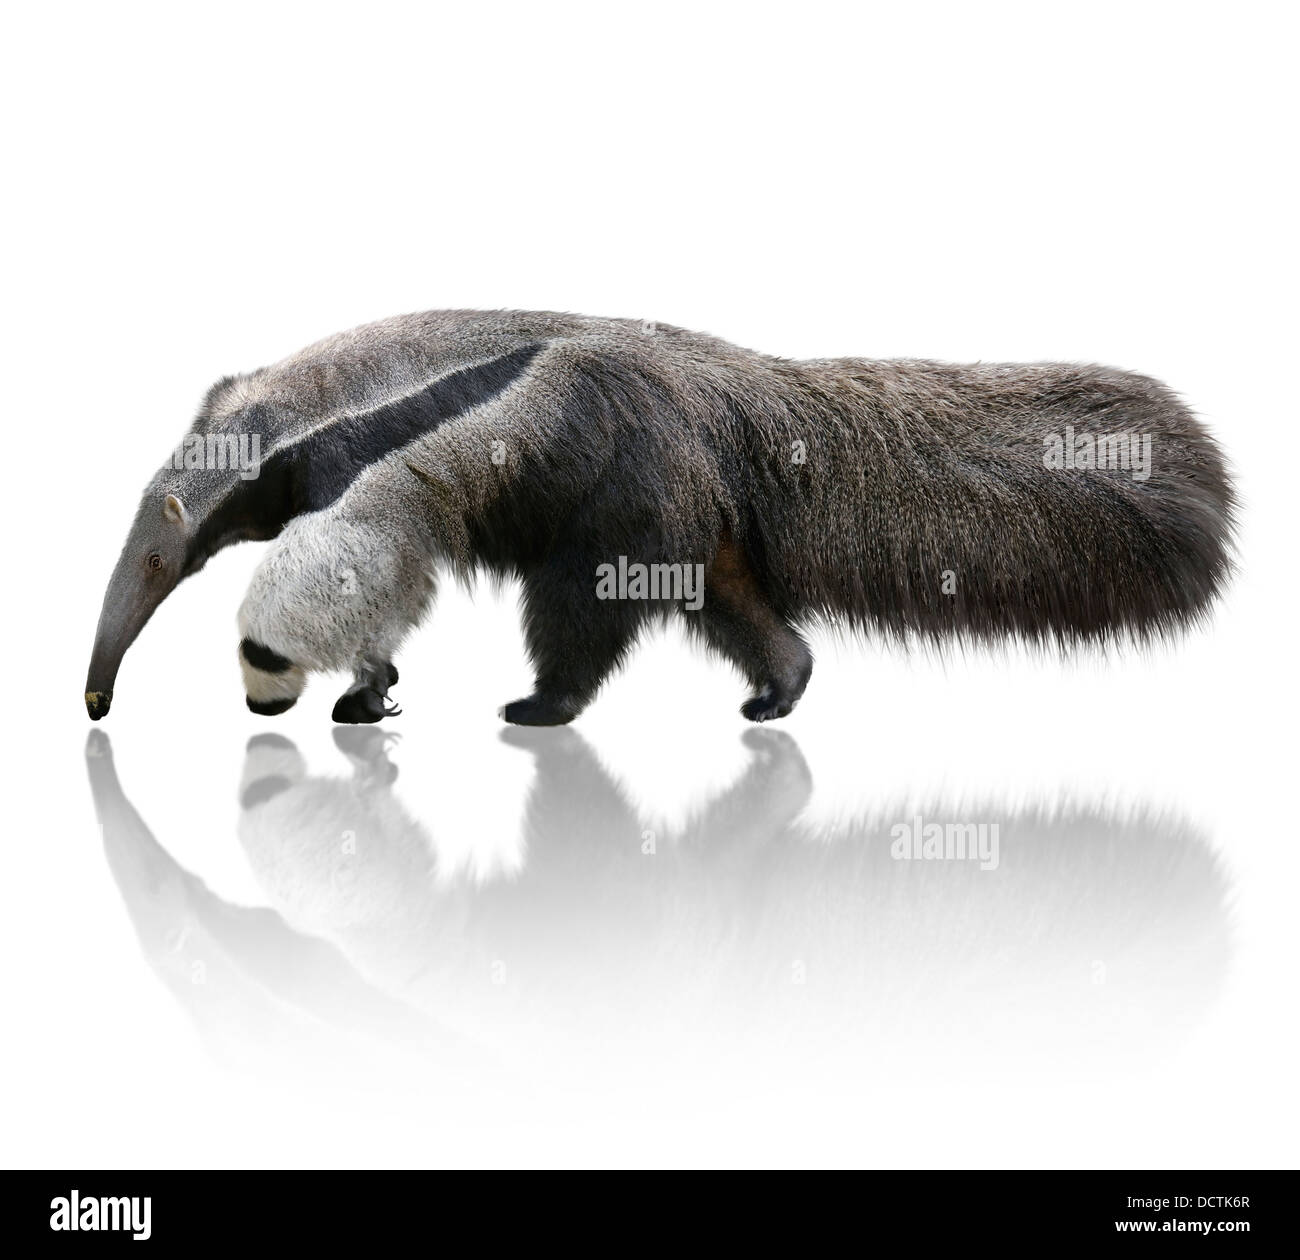 Giant Anteater Stock Photo